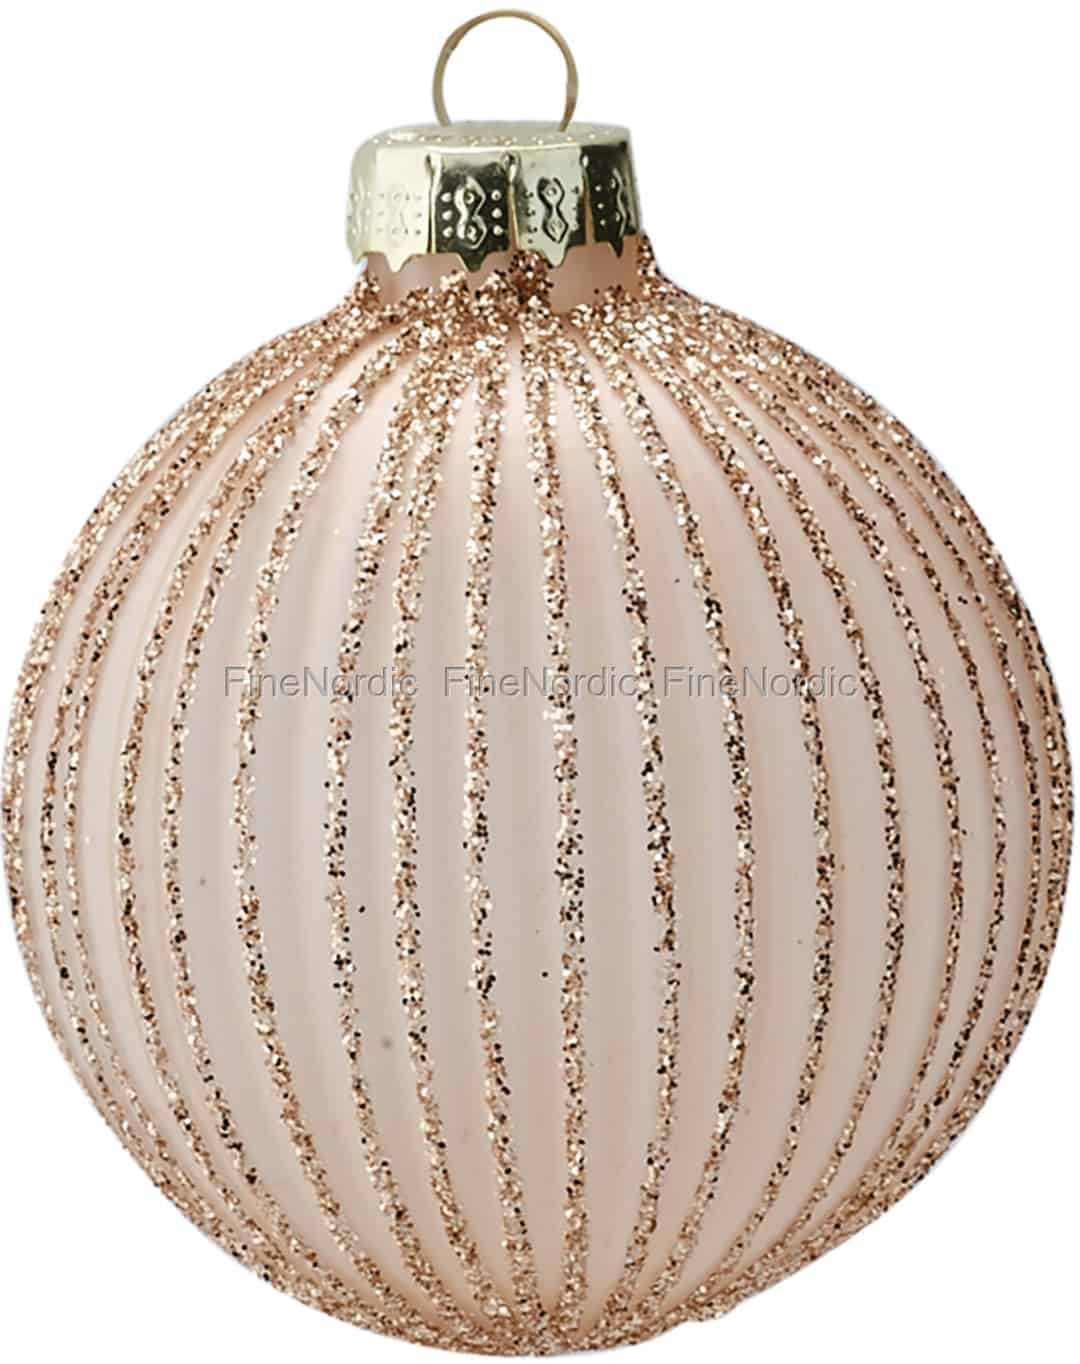 3 Metal Acorn Baubles with Gold Detailing - Heavenly Homes